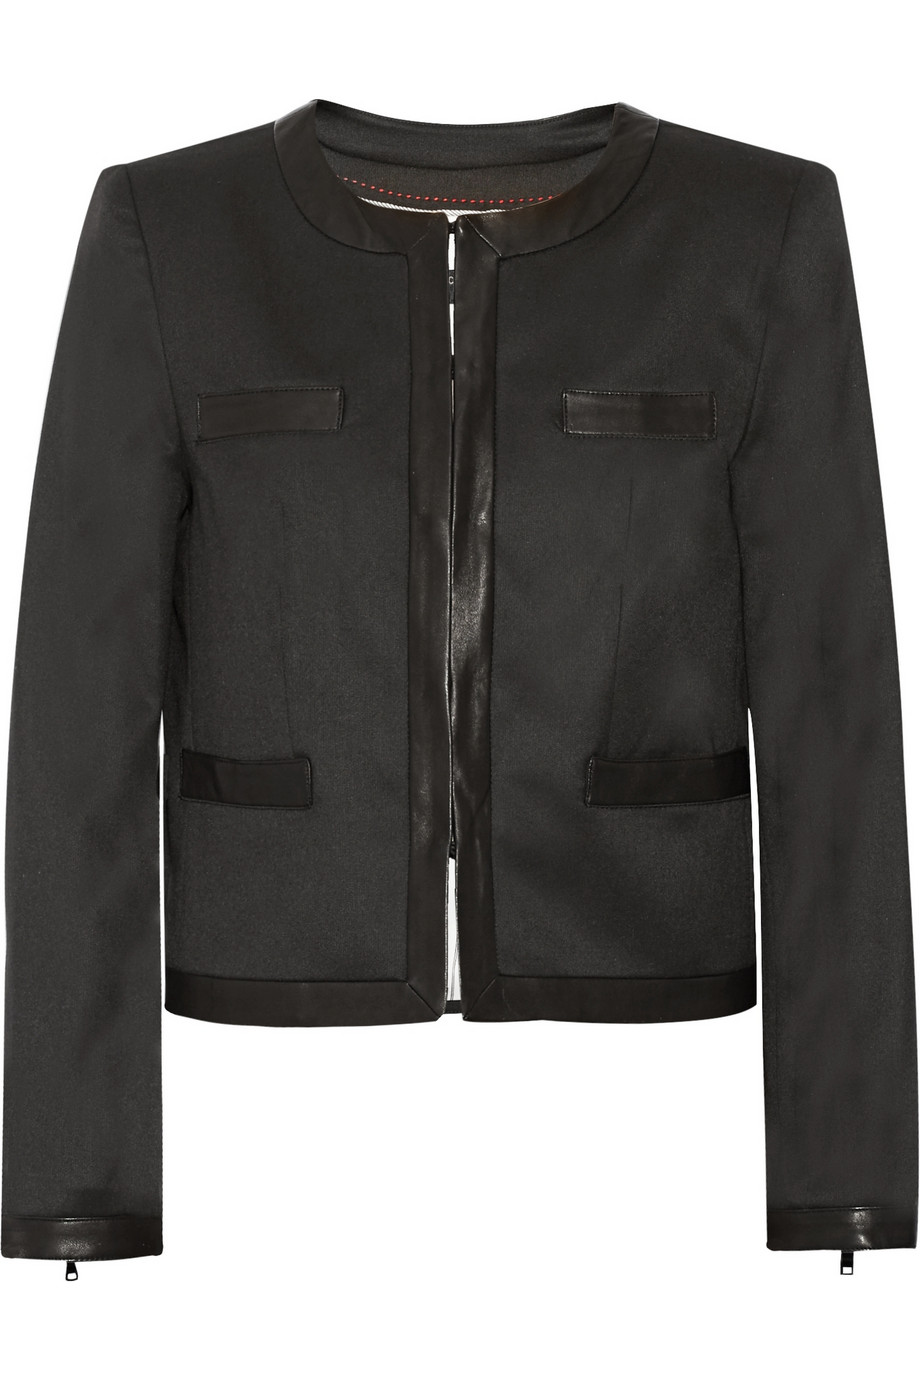 Alice & Olivia Jayde Leather Trimmed Jacket $220